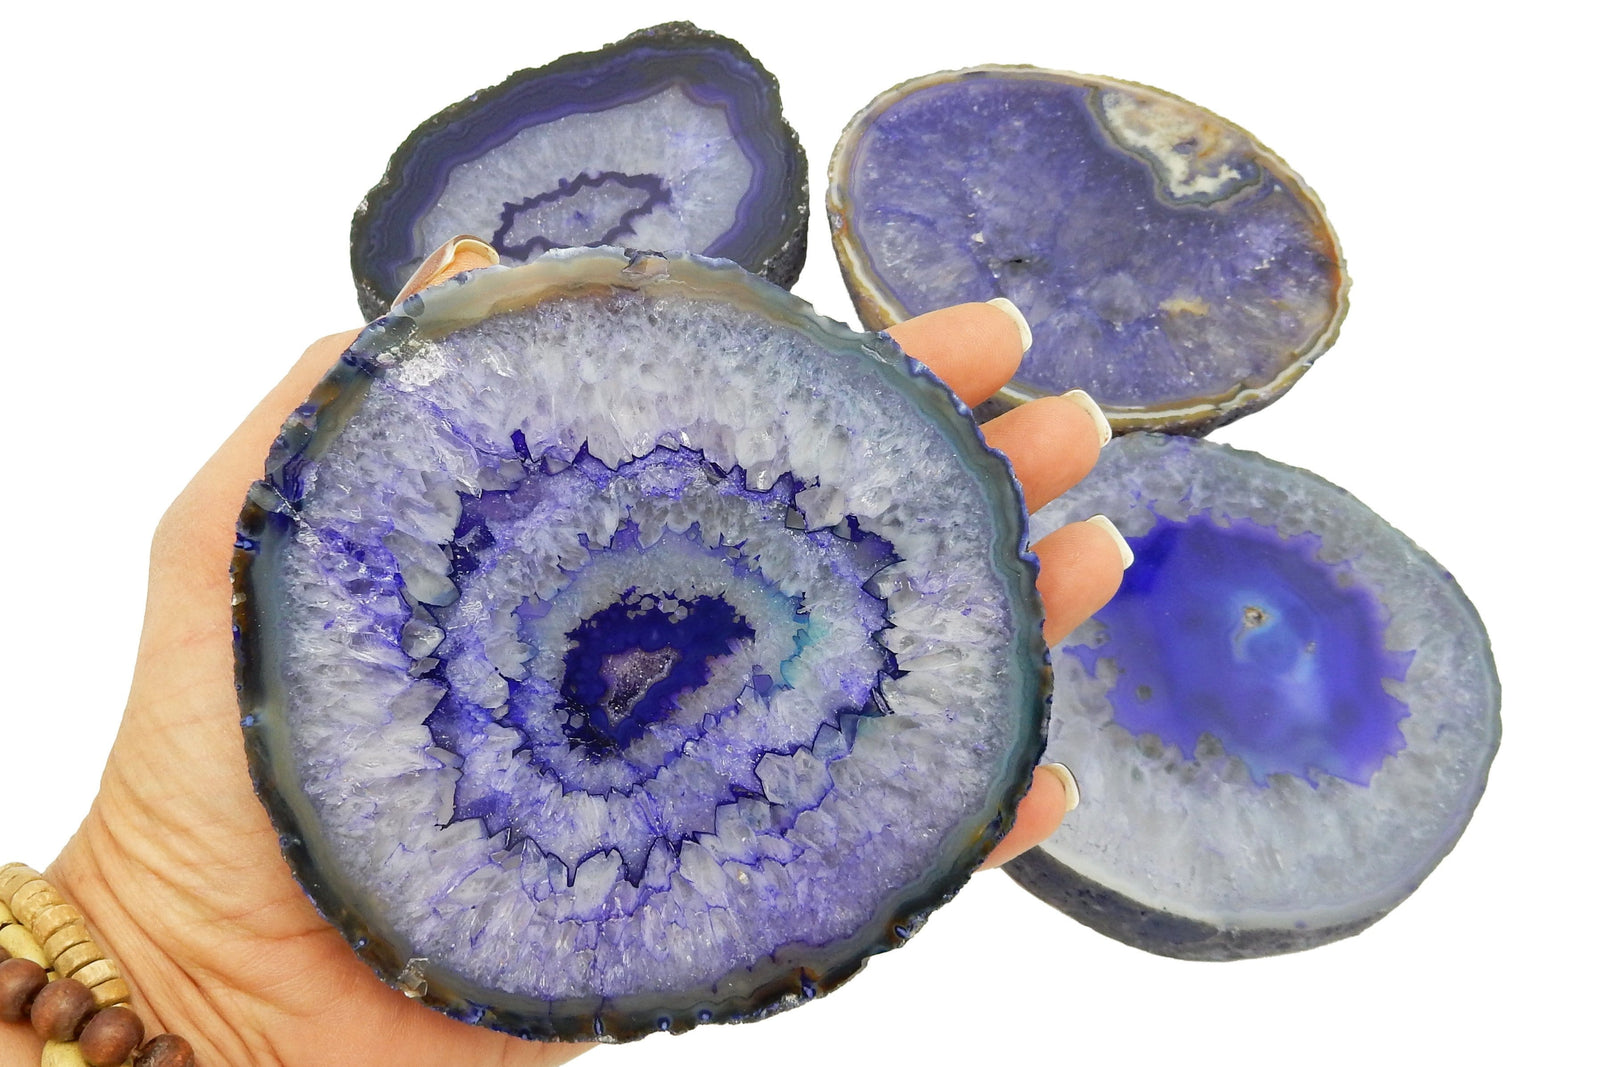 Coasters - Agate Slice - Coaster Size Purple Thick Slab - Home Decor - Geode Decor - Geode Coasters - RK80-Purple